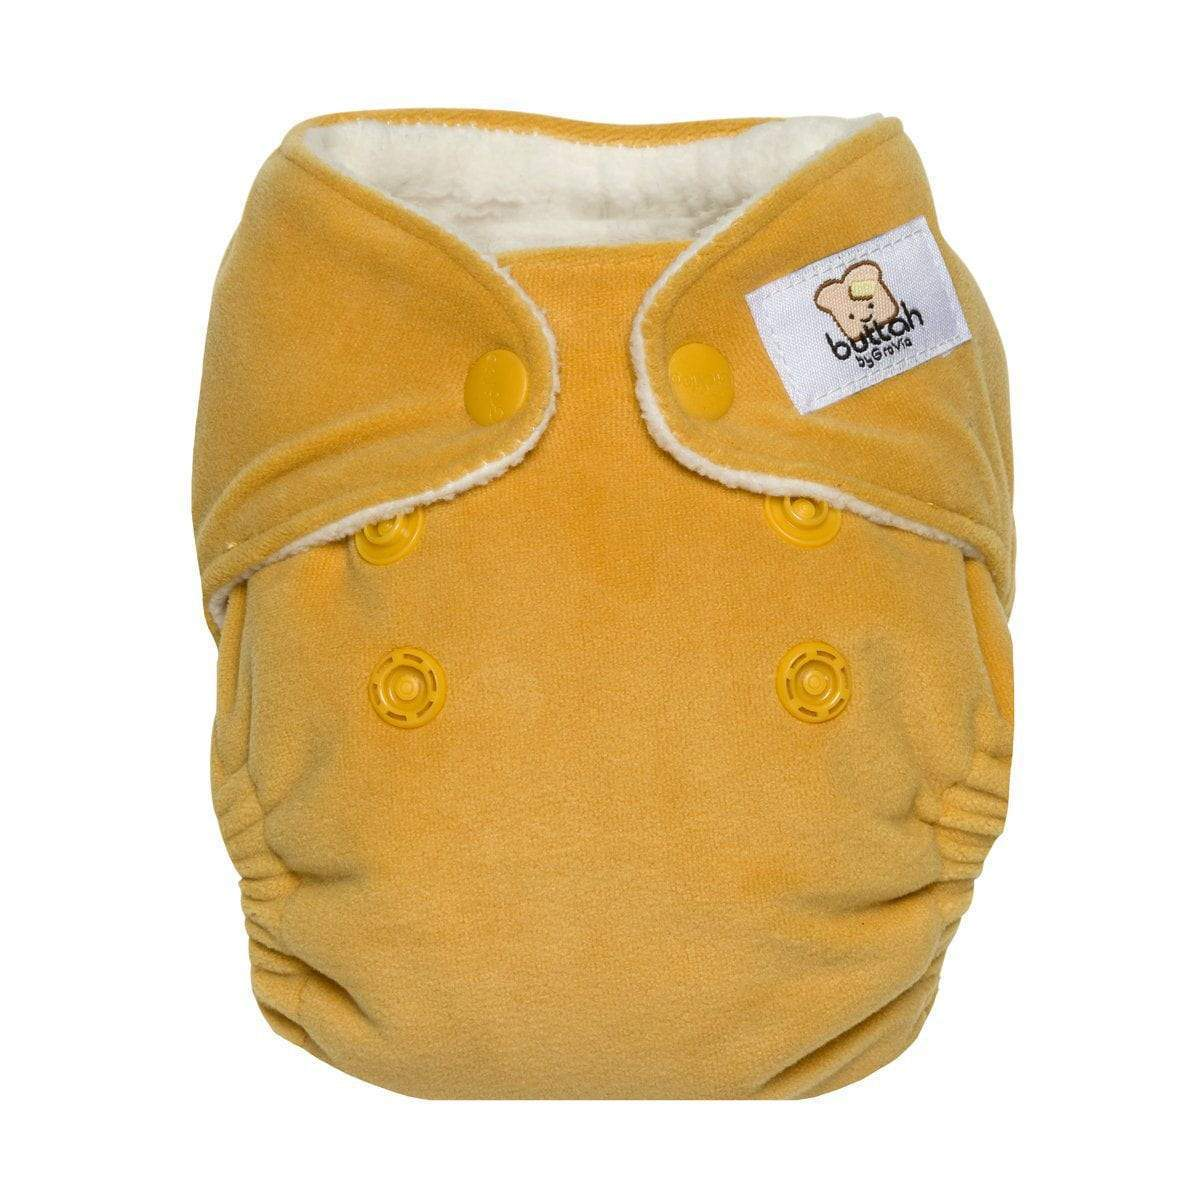 GroVia Newborn All in One Diaper - Buttah Collection